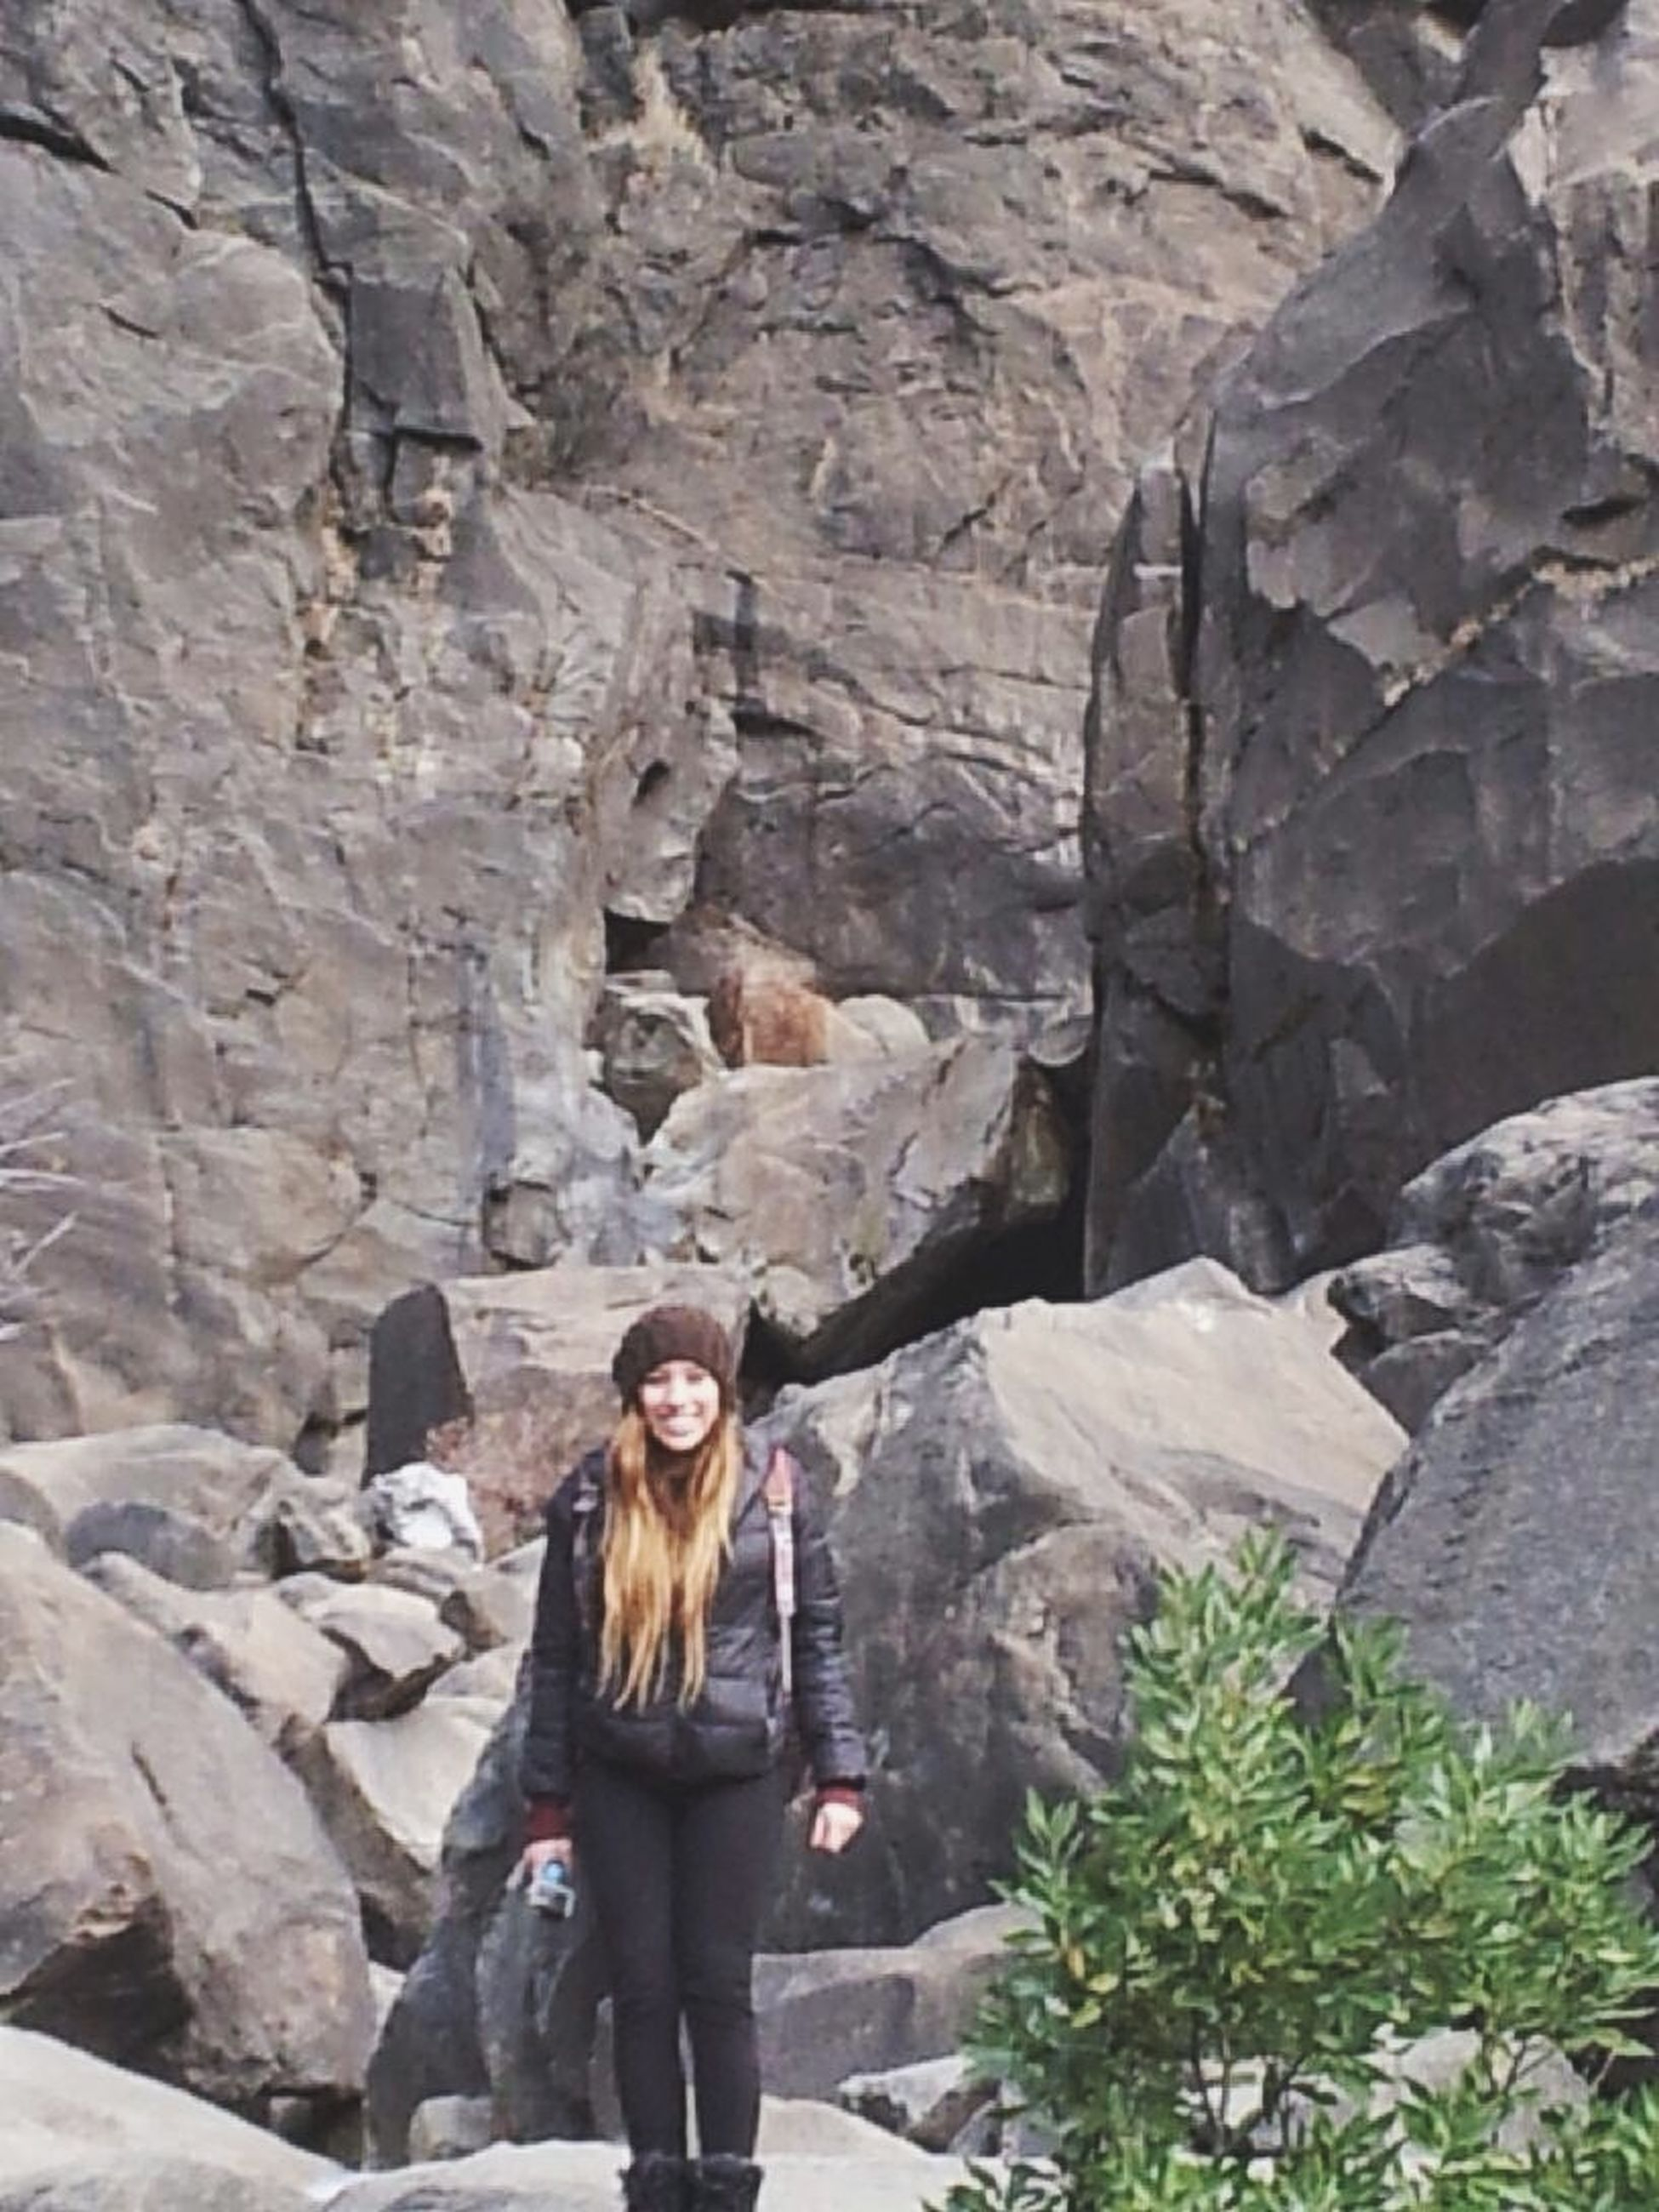 lifestyles, leisure activity, young adult, casual clothing, rock - object, young women, full length, person, standing, rear view, rock formation, three quarter length, vacations, nature, day, rock, long hair